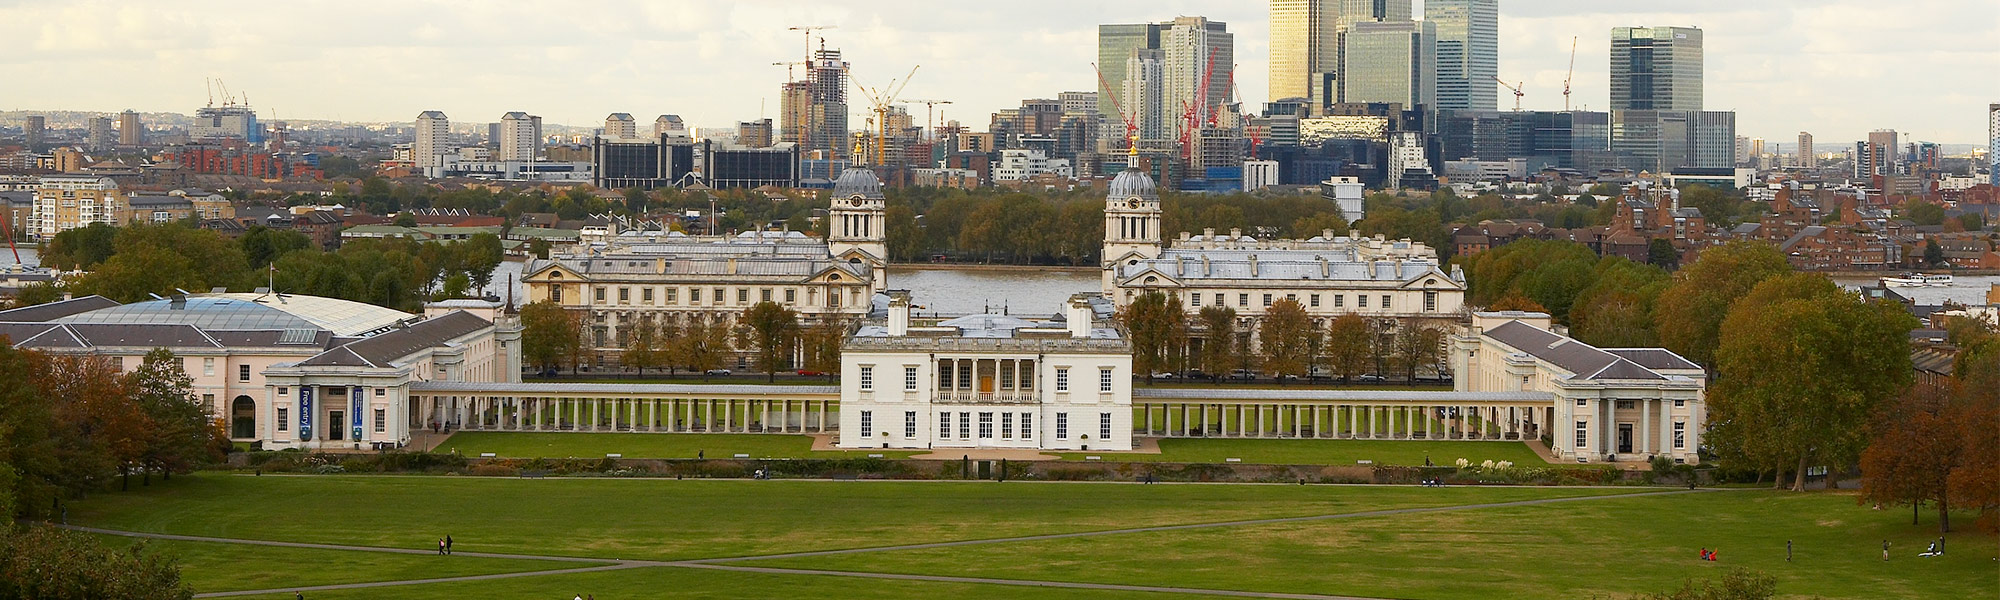 The University of Greenwich - Greenwich Campus